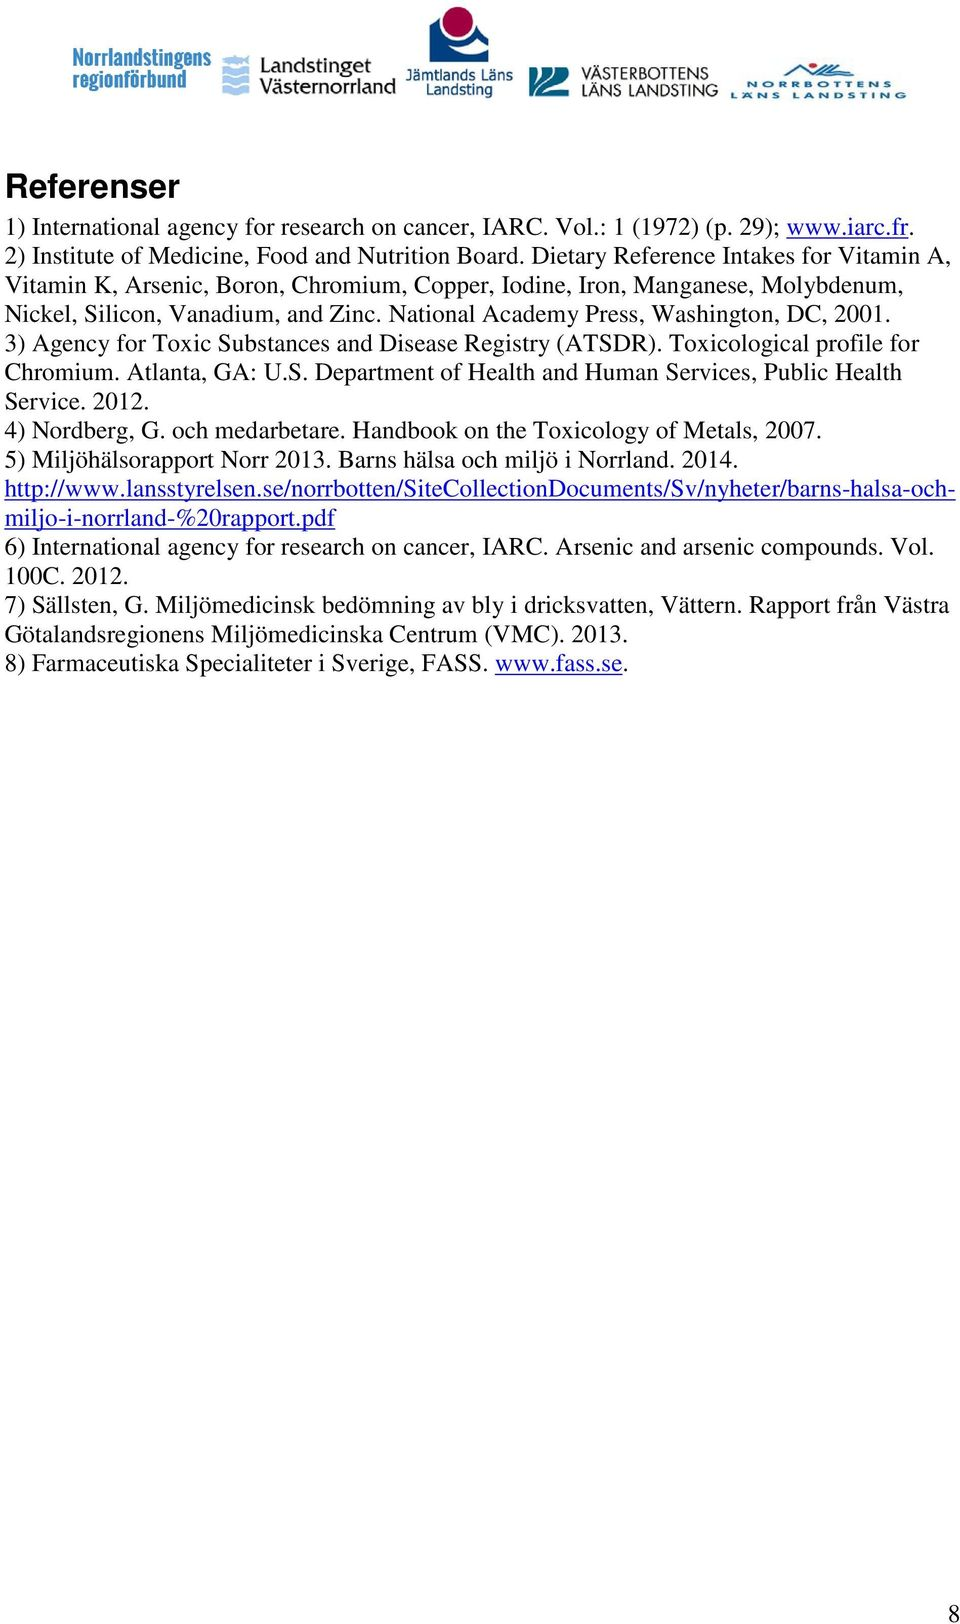 National Academy Press, Washington, DC, 2001. 3) Agency for Toxic Substances and Disease Registry (ATSDR). Toxicological profile for Chromium. Atlanta, GA: U.S. Department of Health and Human Services, Public Health Service.